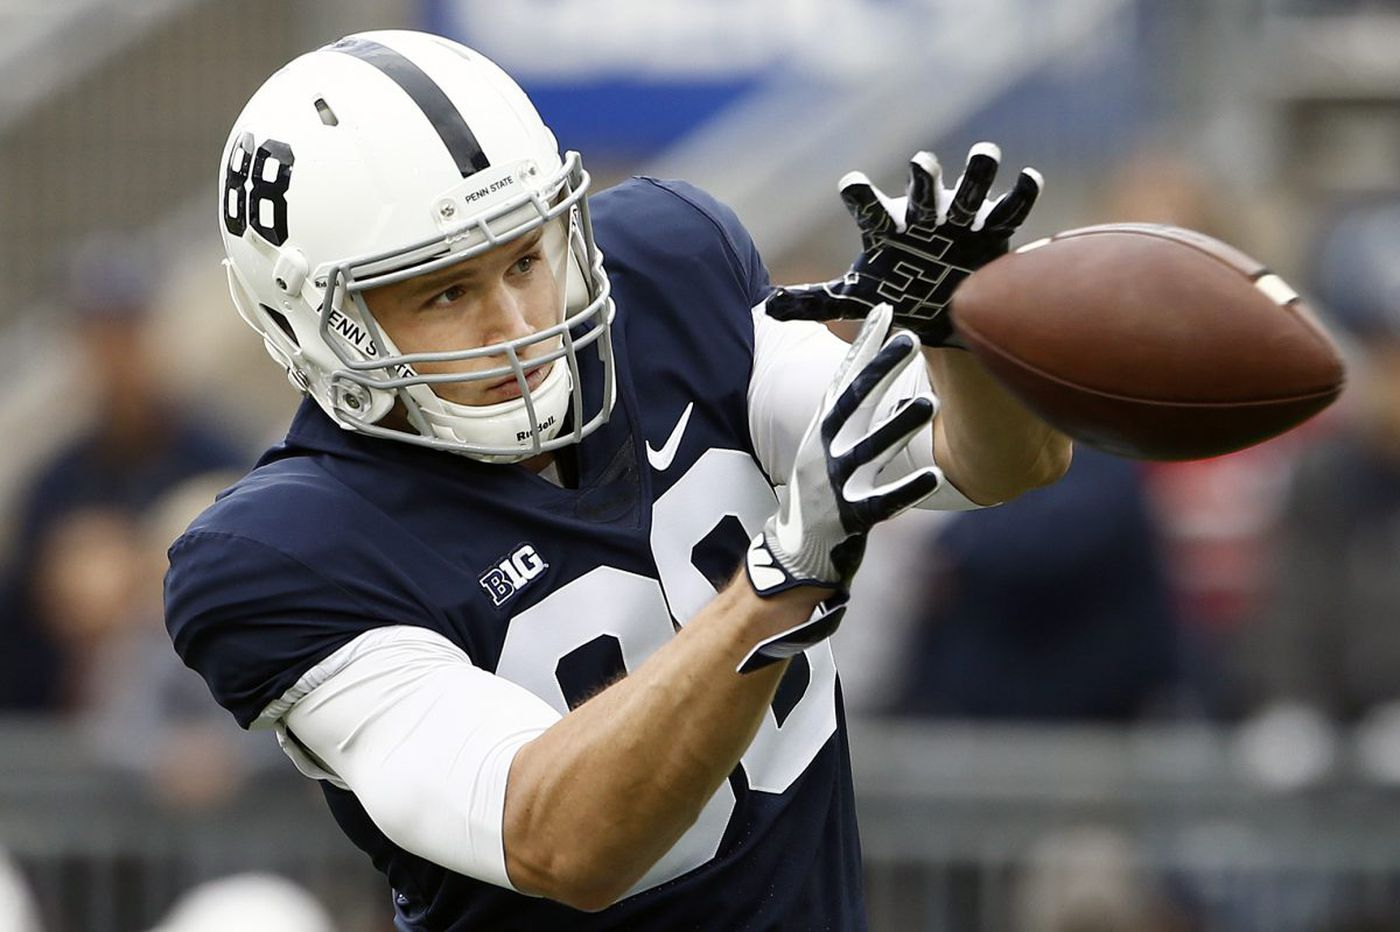 lowest price 9531d 98c53 Penn State's Mike Gesicki befriends Michigan QB's mom at ...